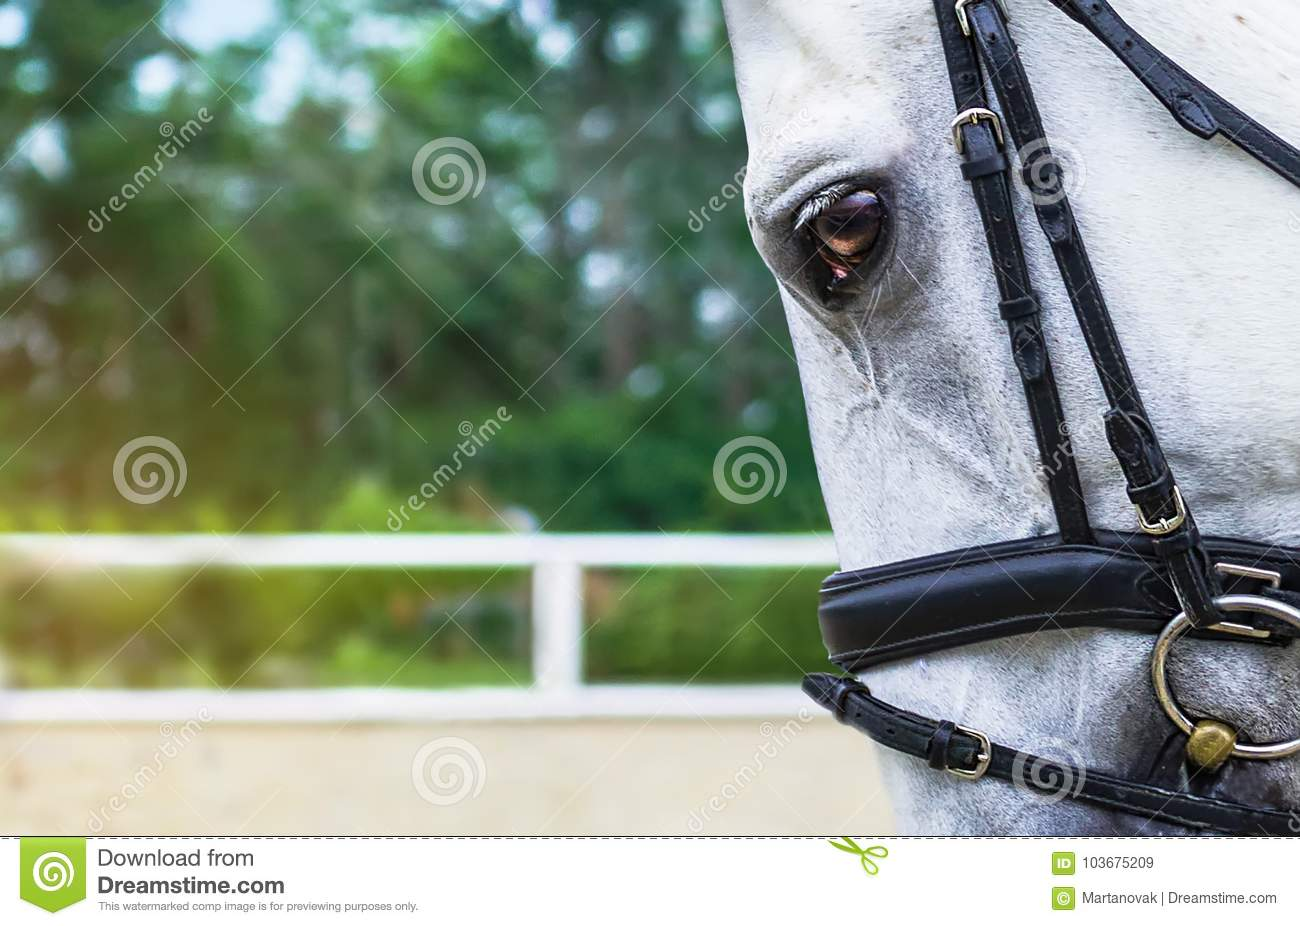 White Horse Half Face Looking Forward On Show Jumping Or Dressage Competition Green Blur Background Stock Image Image Of Bridled Bridle 103675209